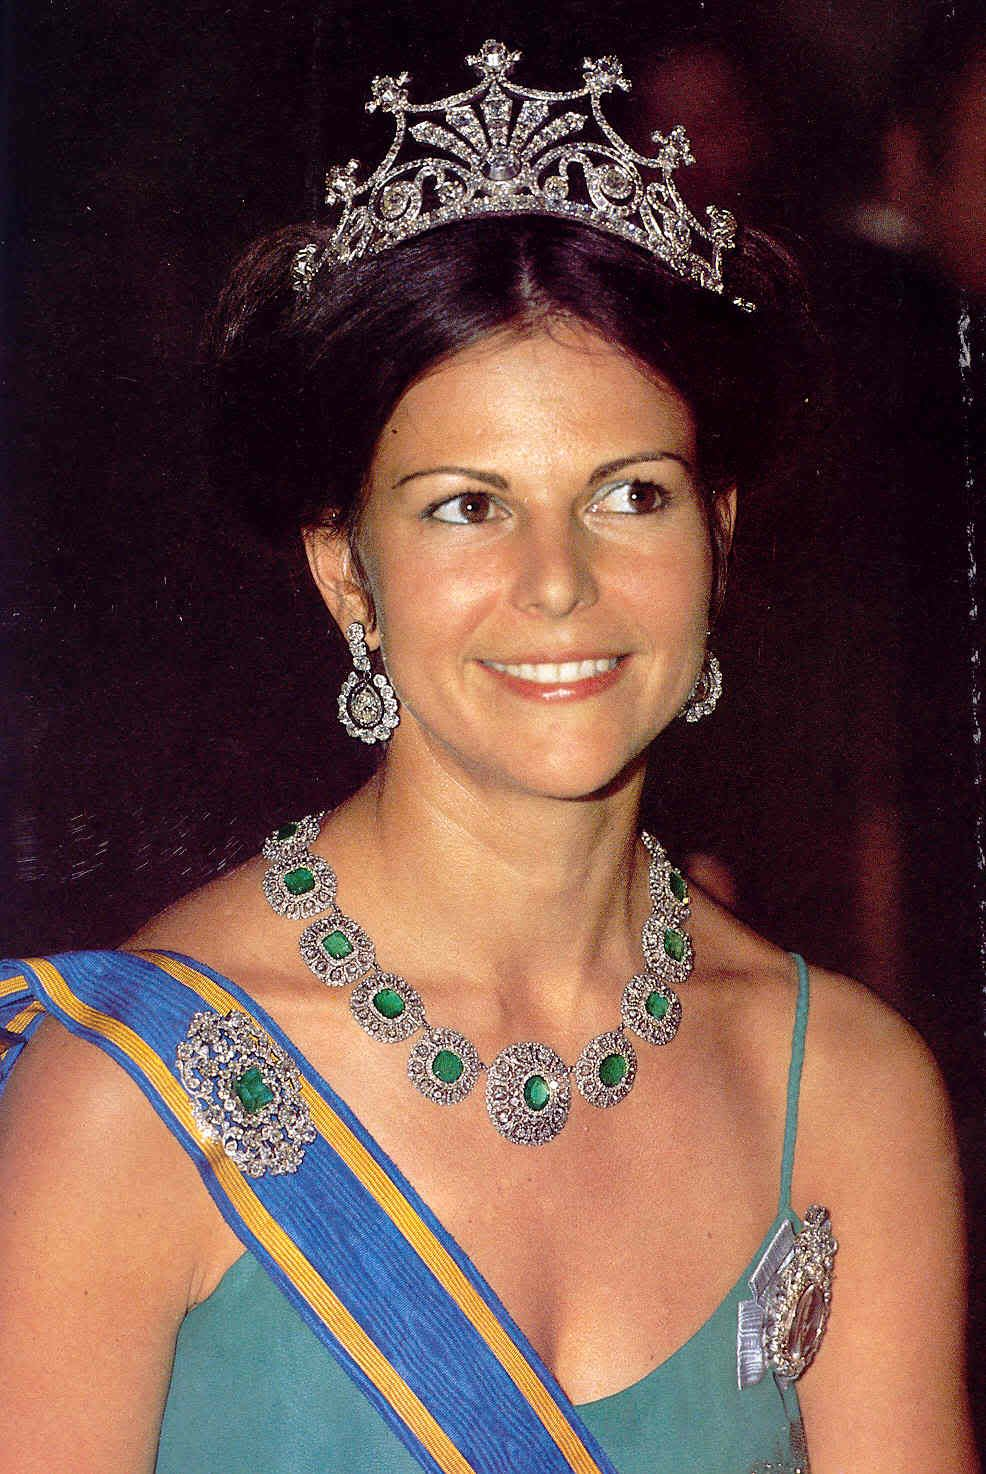 #Swedish Royal Family #Queen Silvia #Tiara | Royals ...